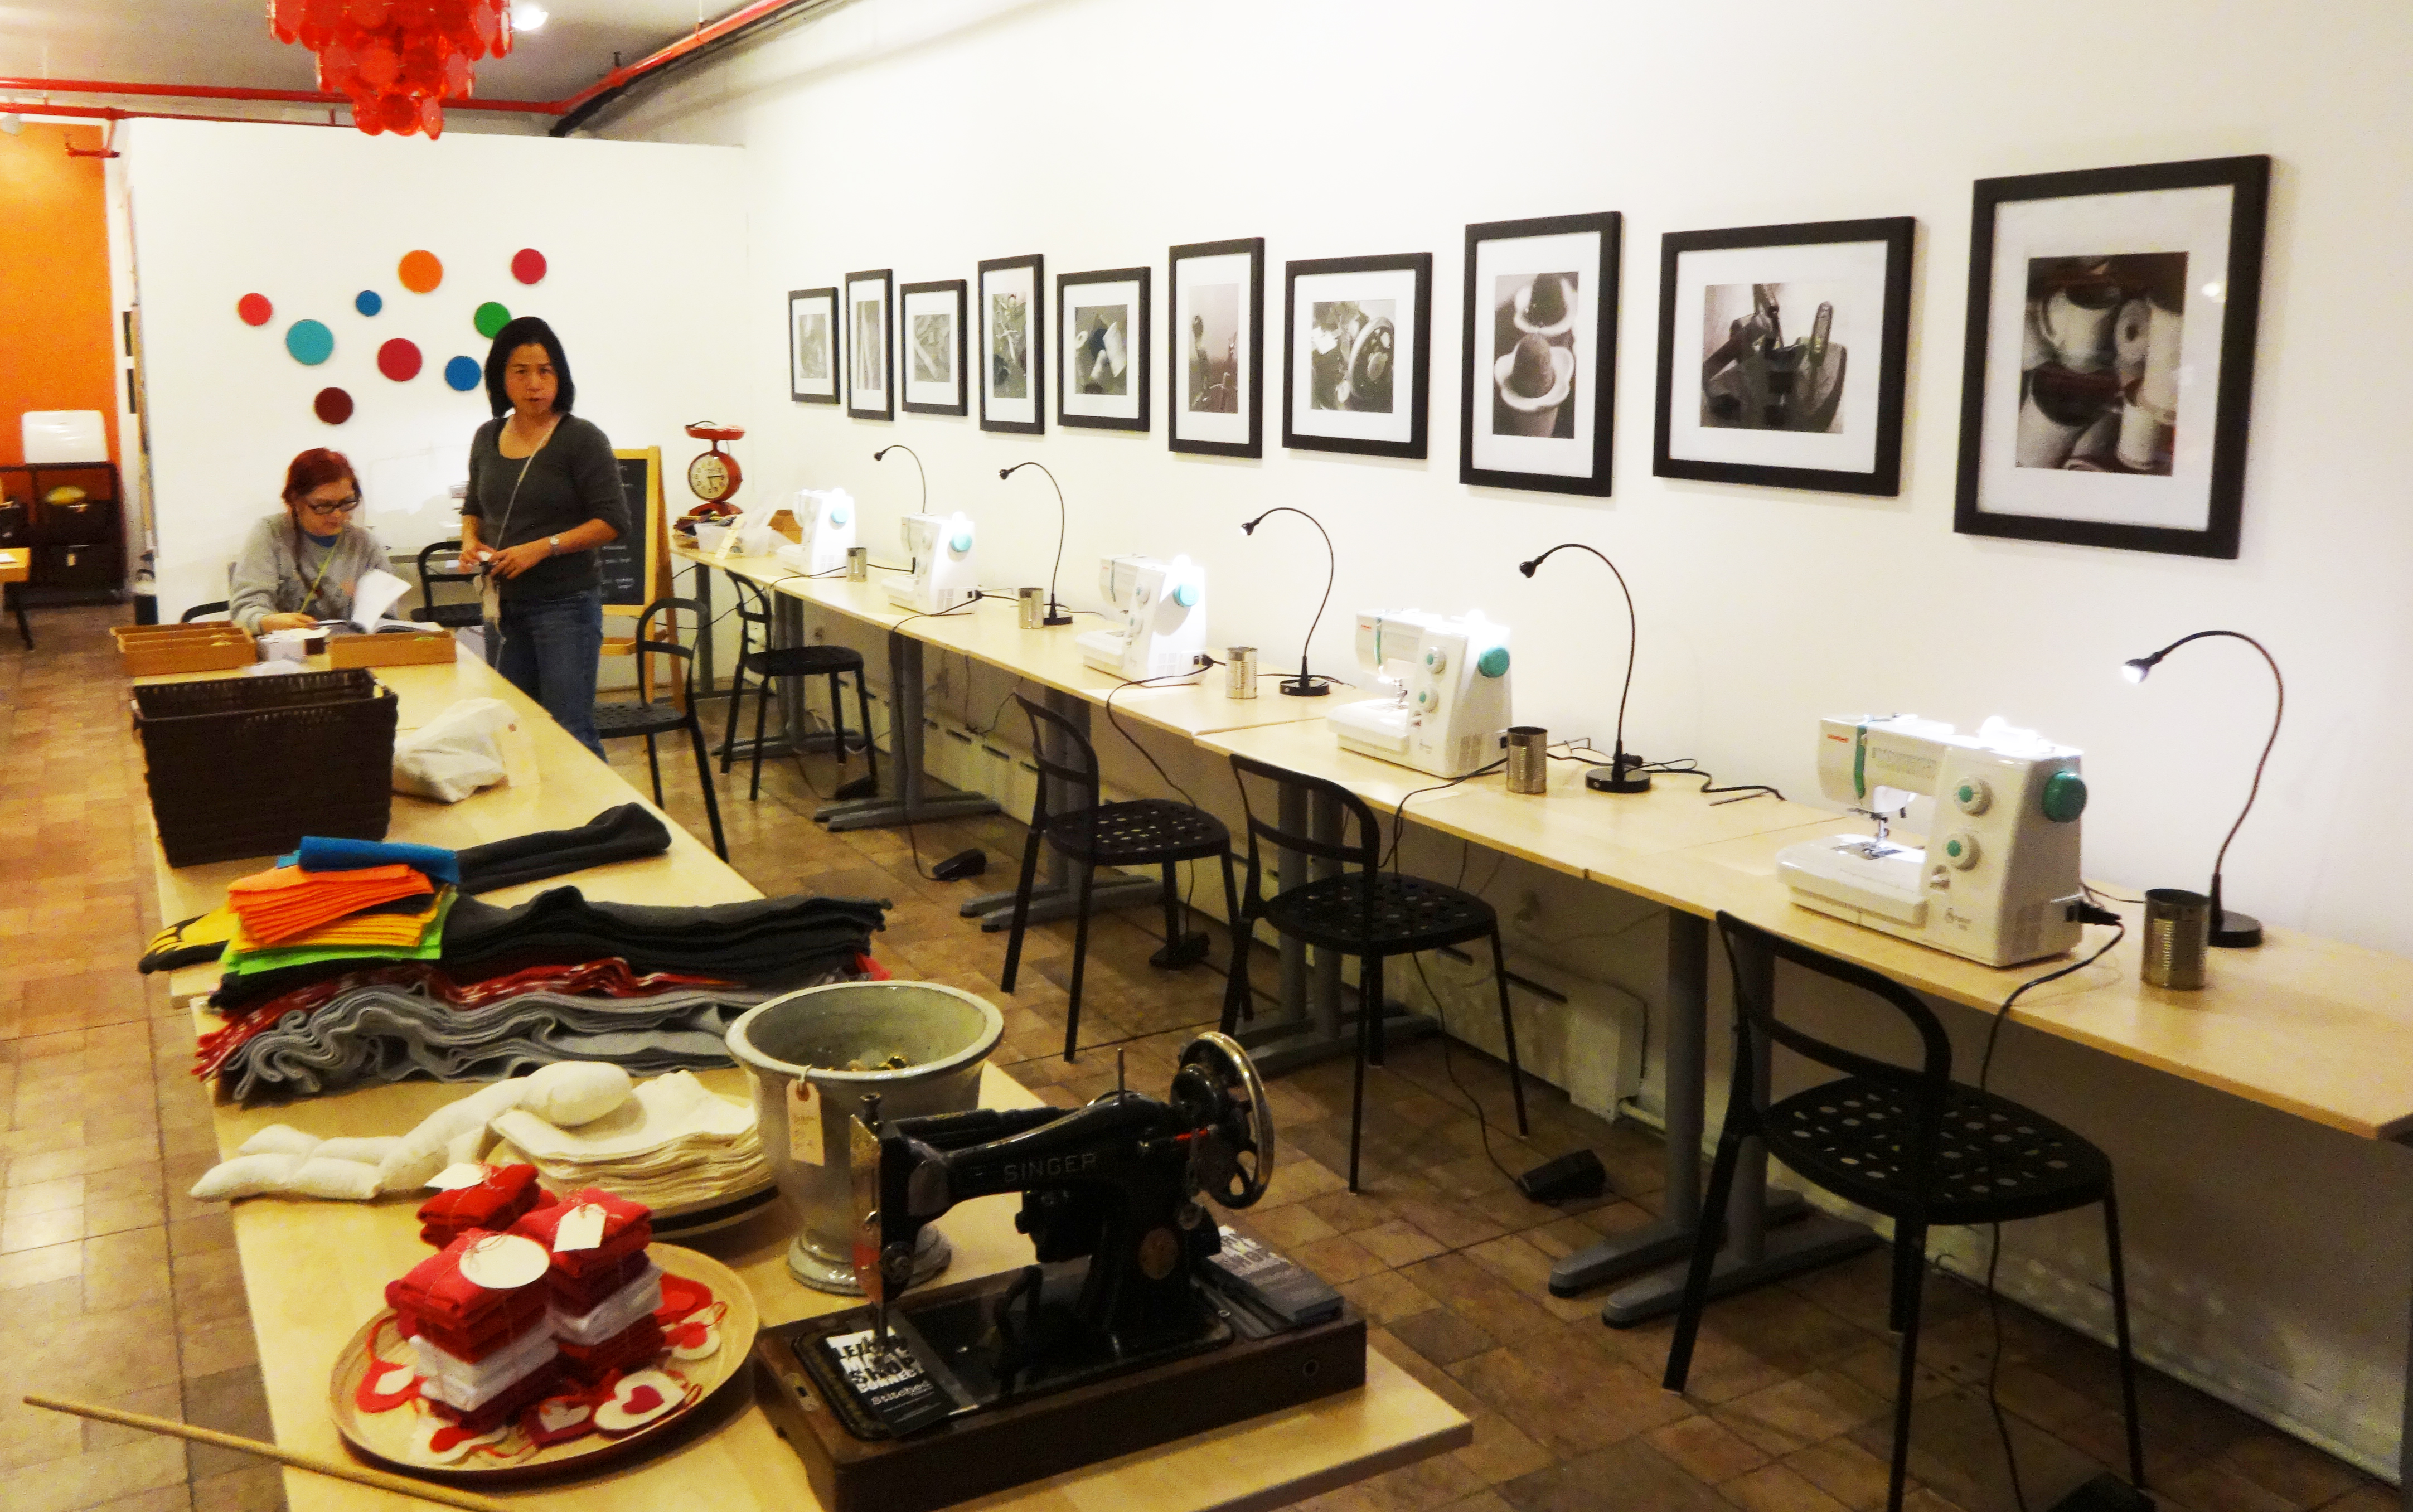 Stitched sewing machines